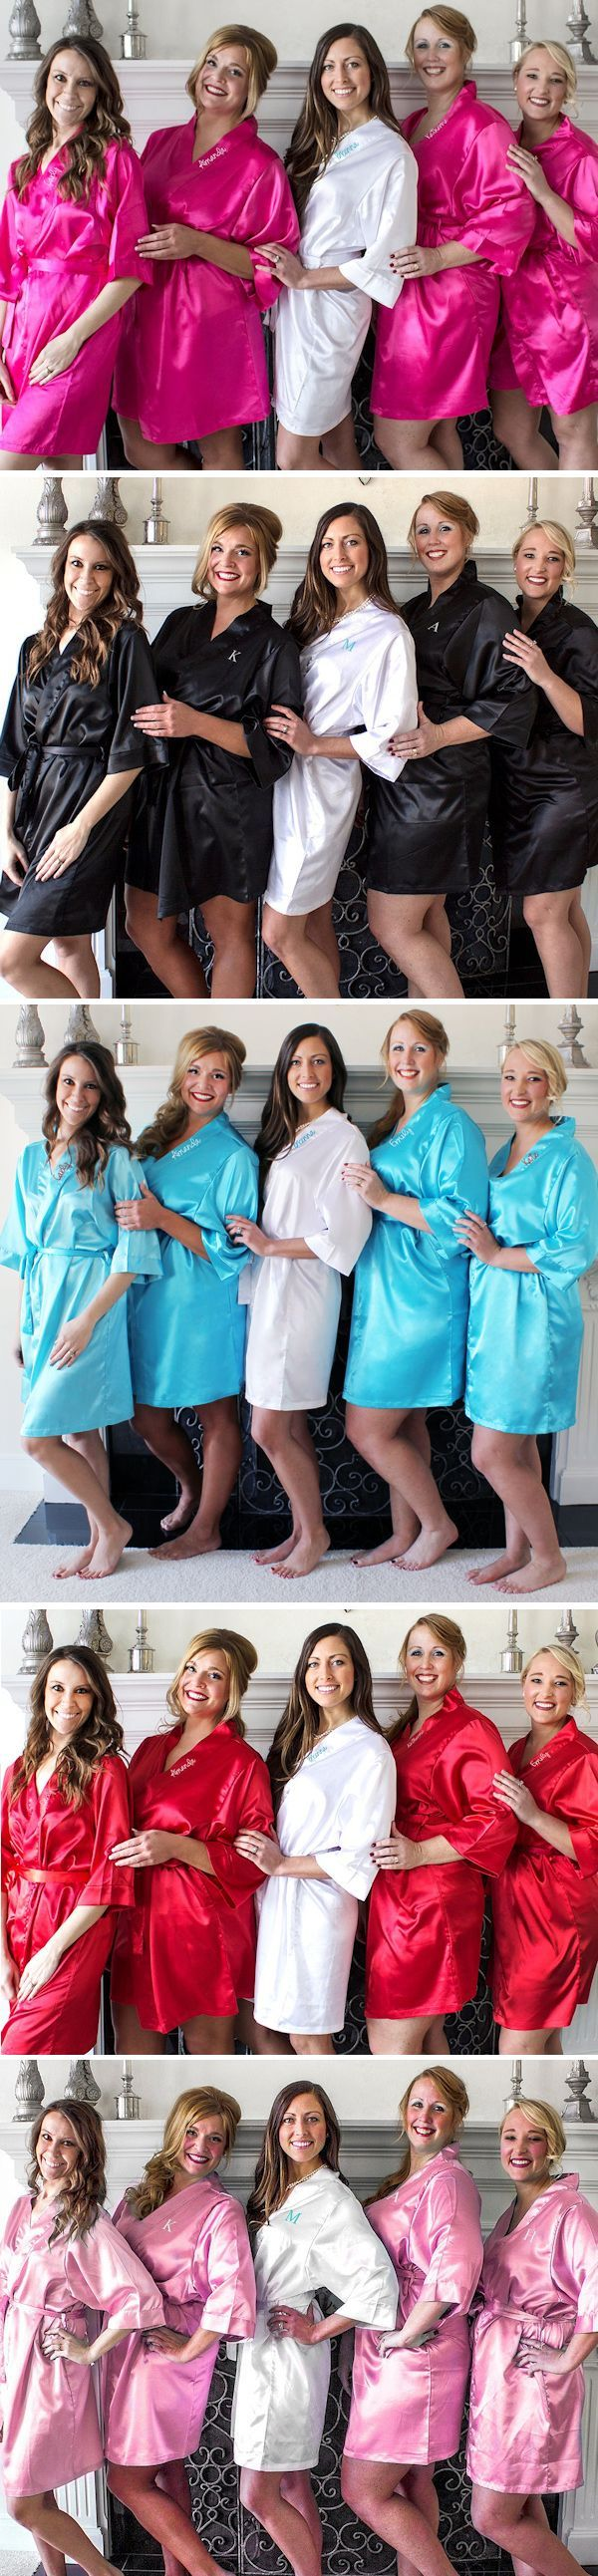 Personalized Satin Robes 7 Colors Wedding Gifts For BridesmaidsJunior